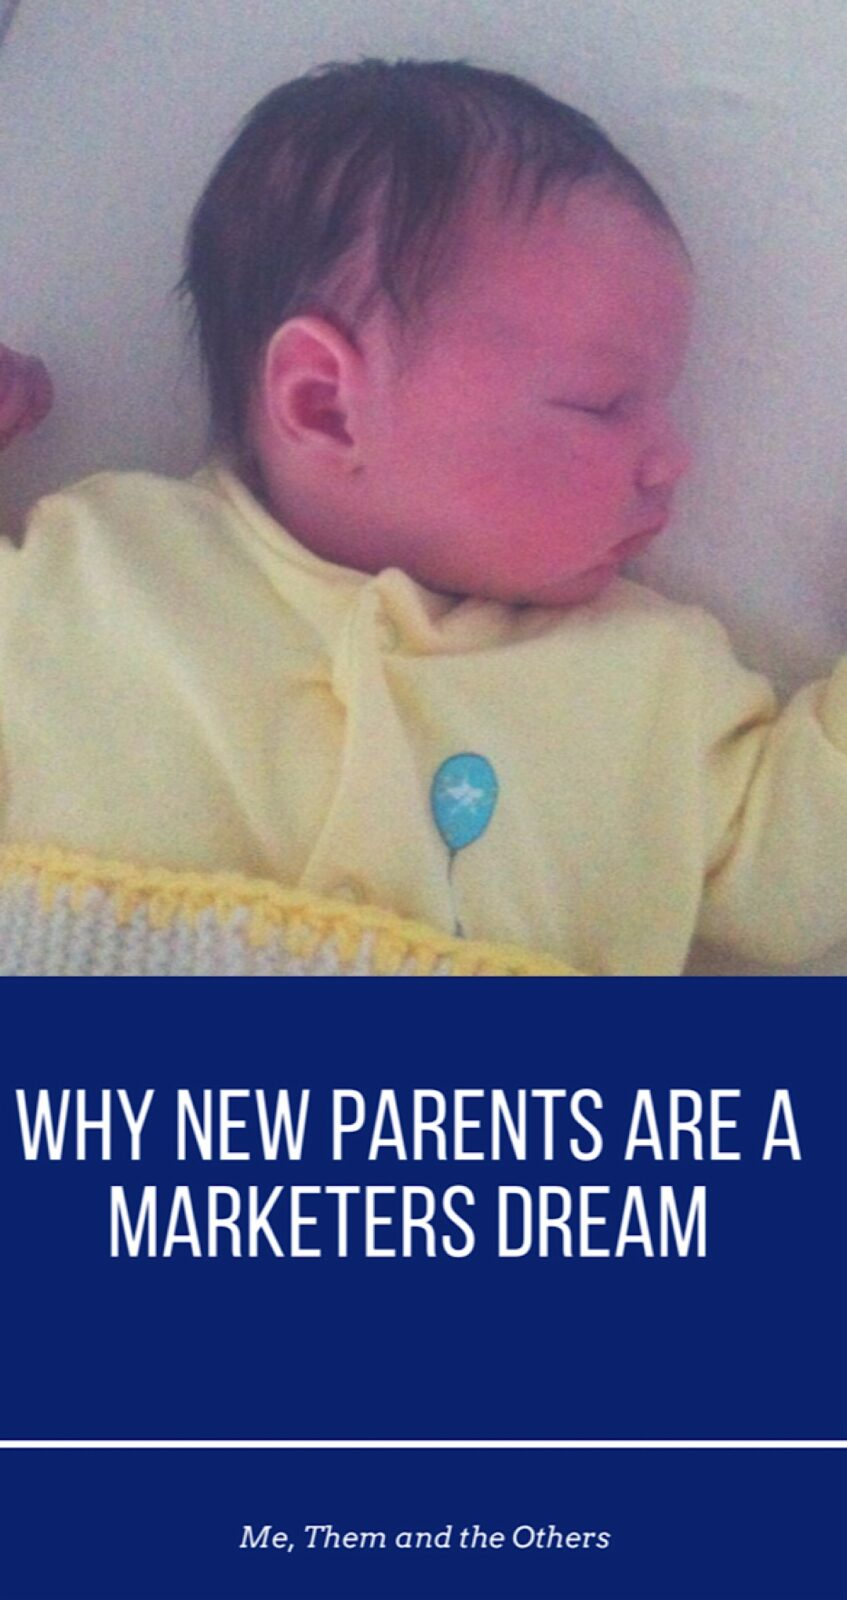 Why new parents are a marketers dream - Baby asleep in a Moses basket